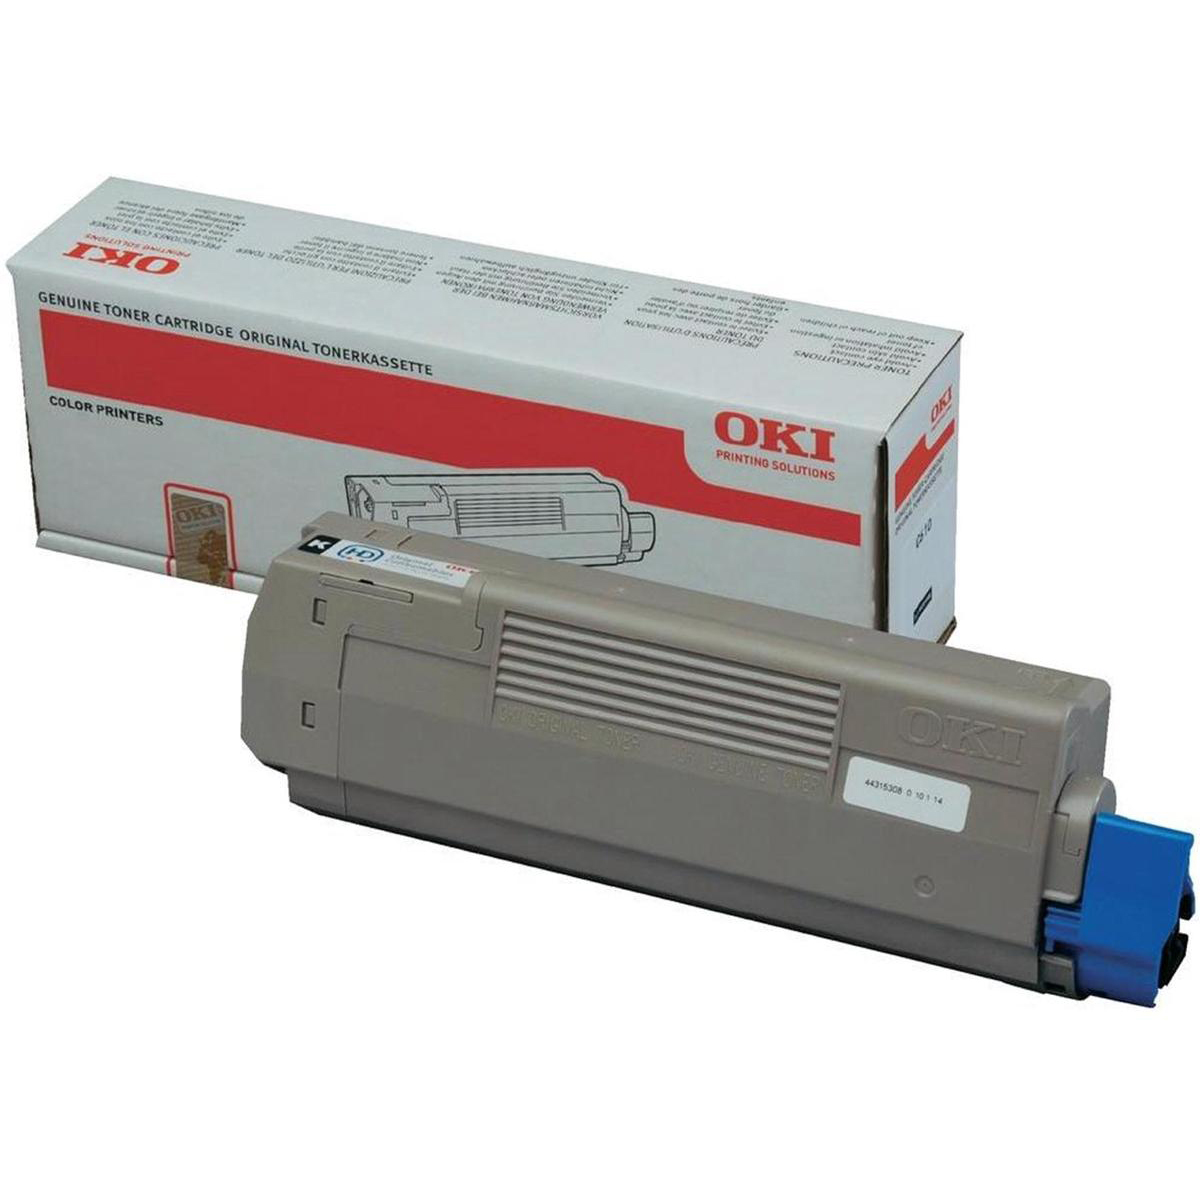 Oki C610 Toner Cartridge Page Life 8000pp Black Ref 44315308